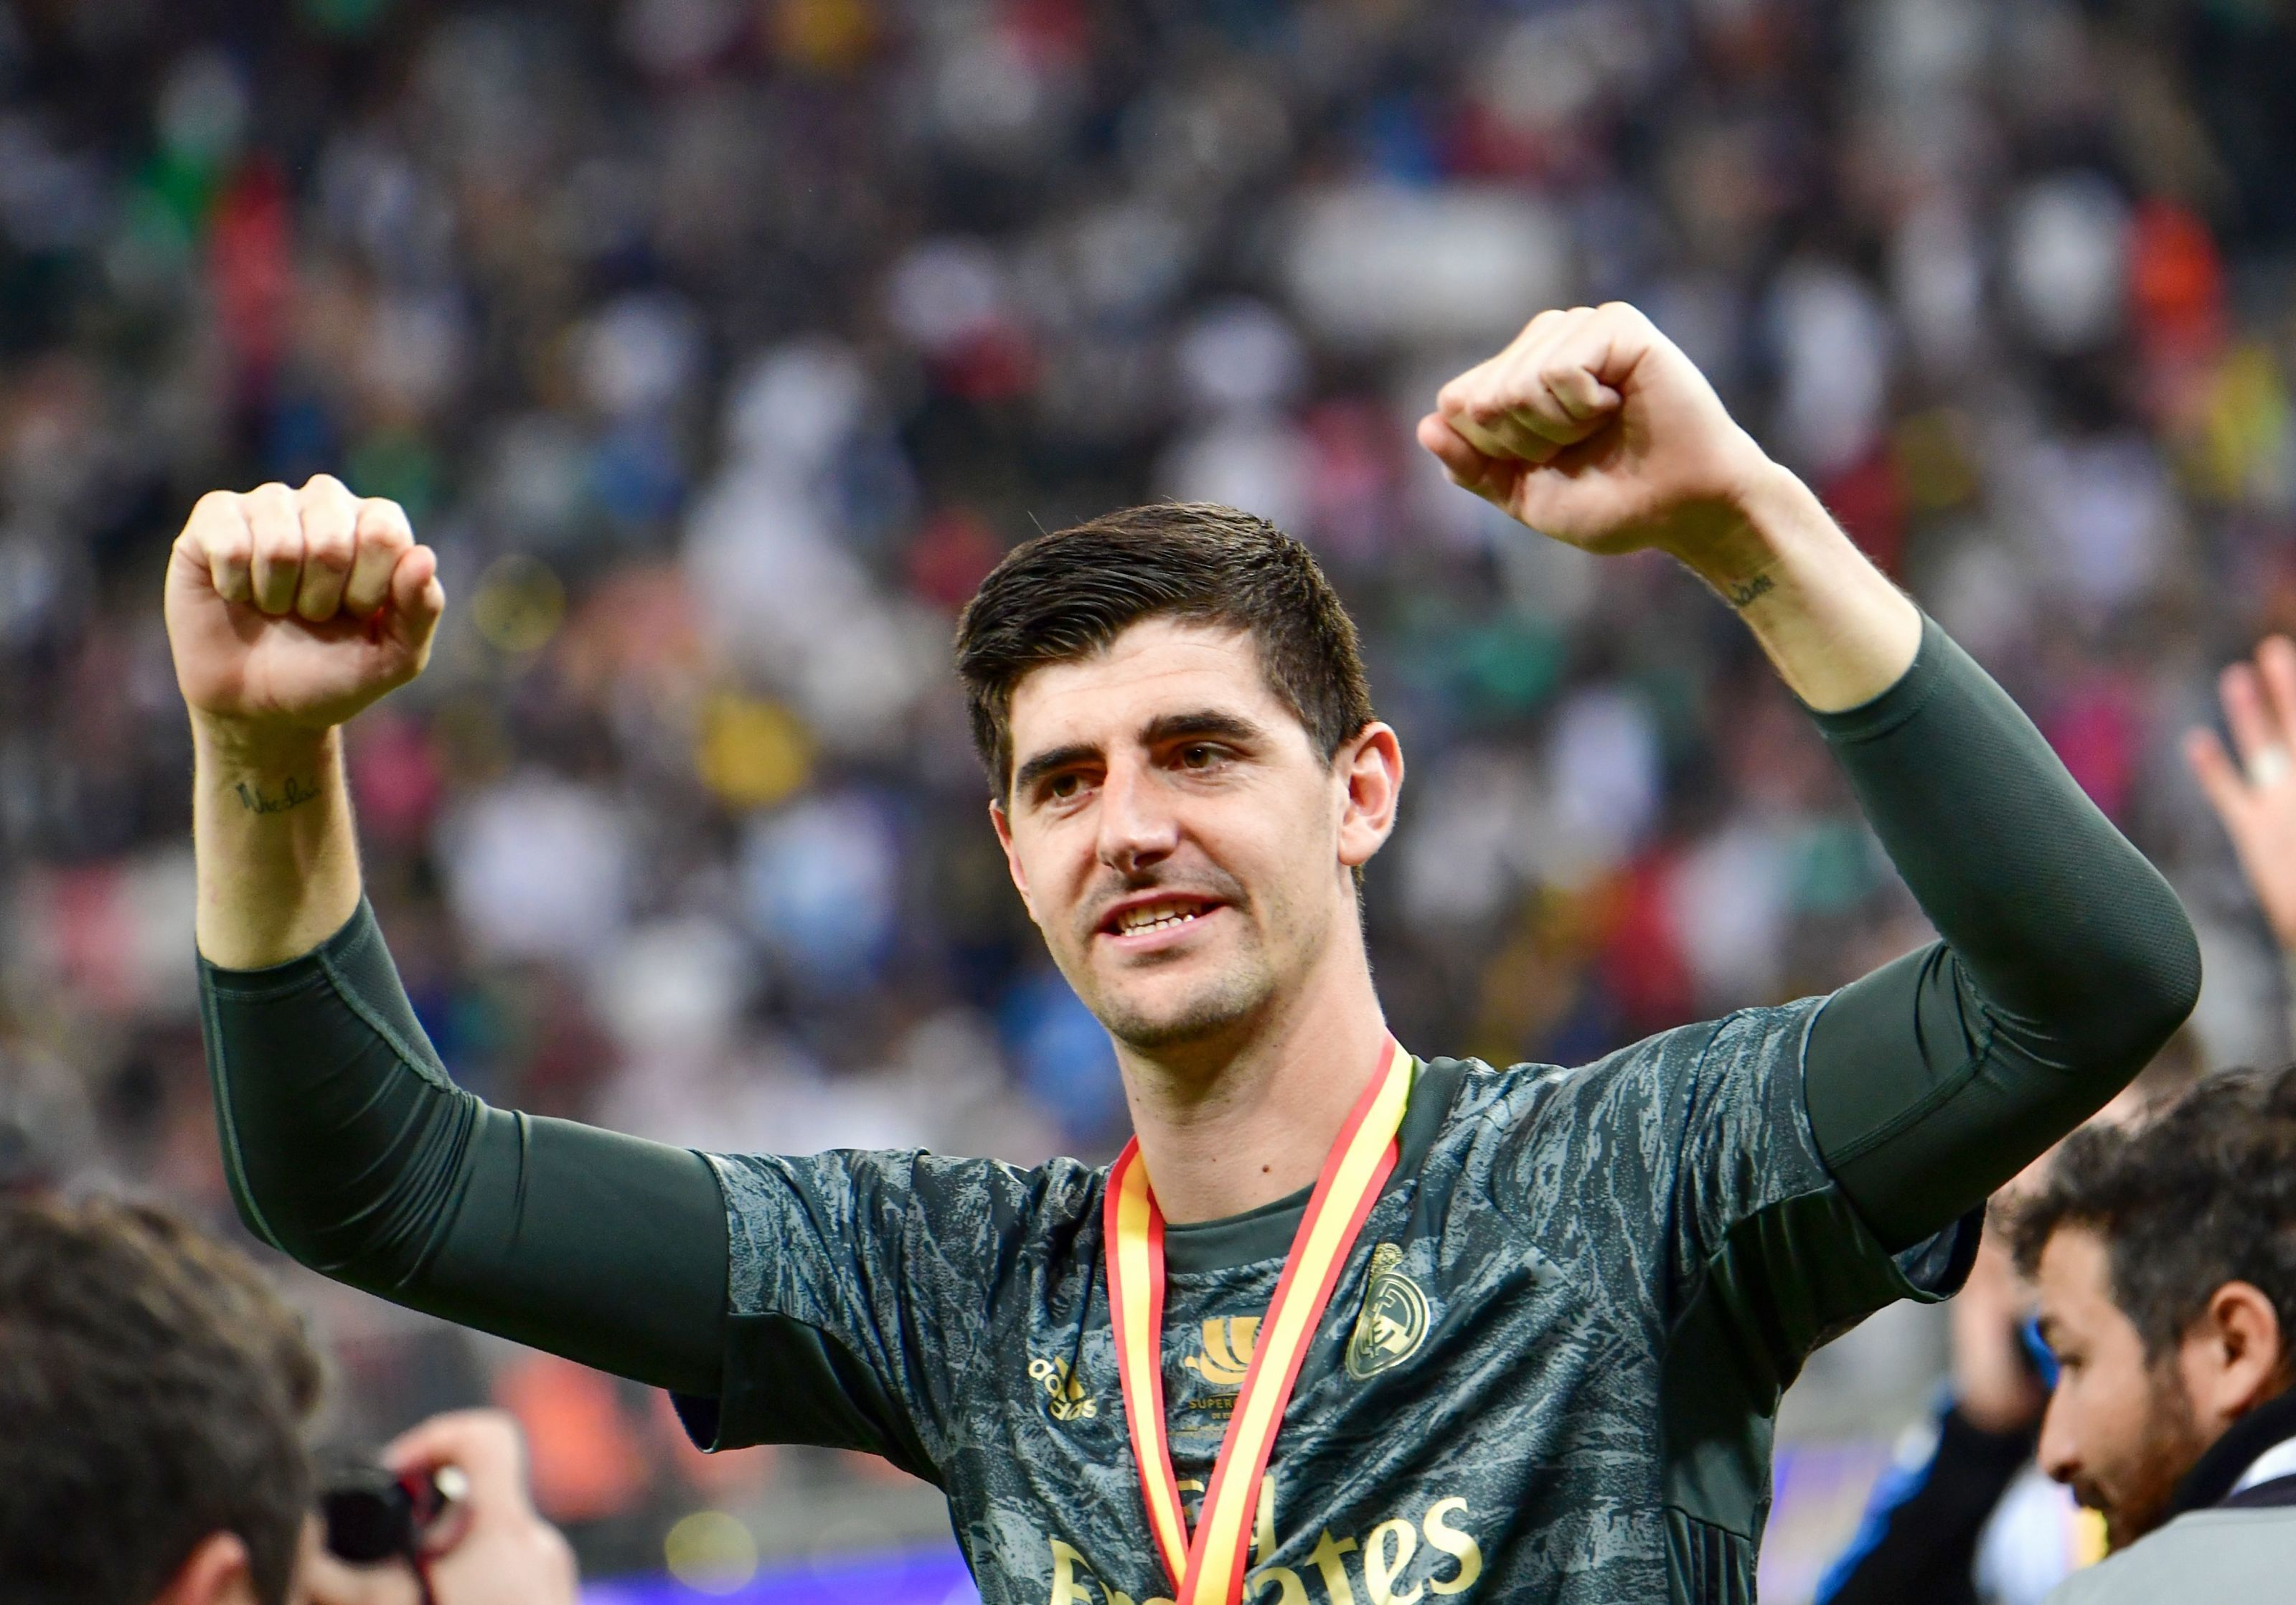 Real Madrid: Thibaut Courtois brings a level of safety not felt since Iker Casillas